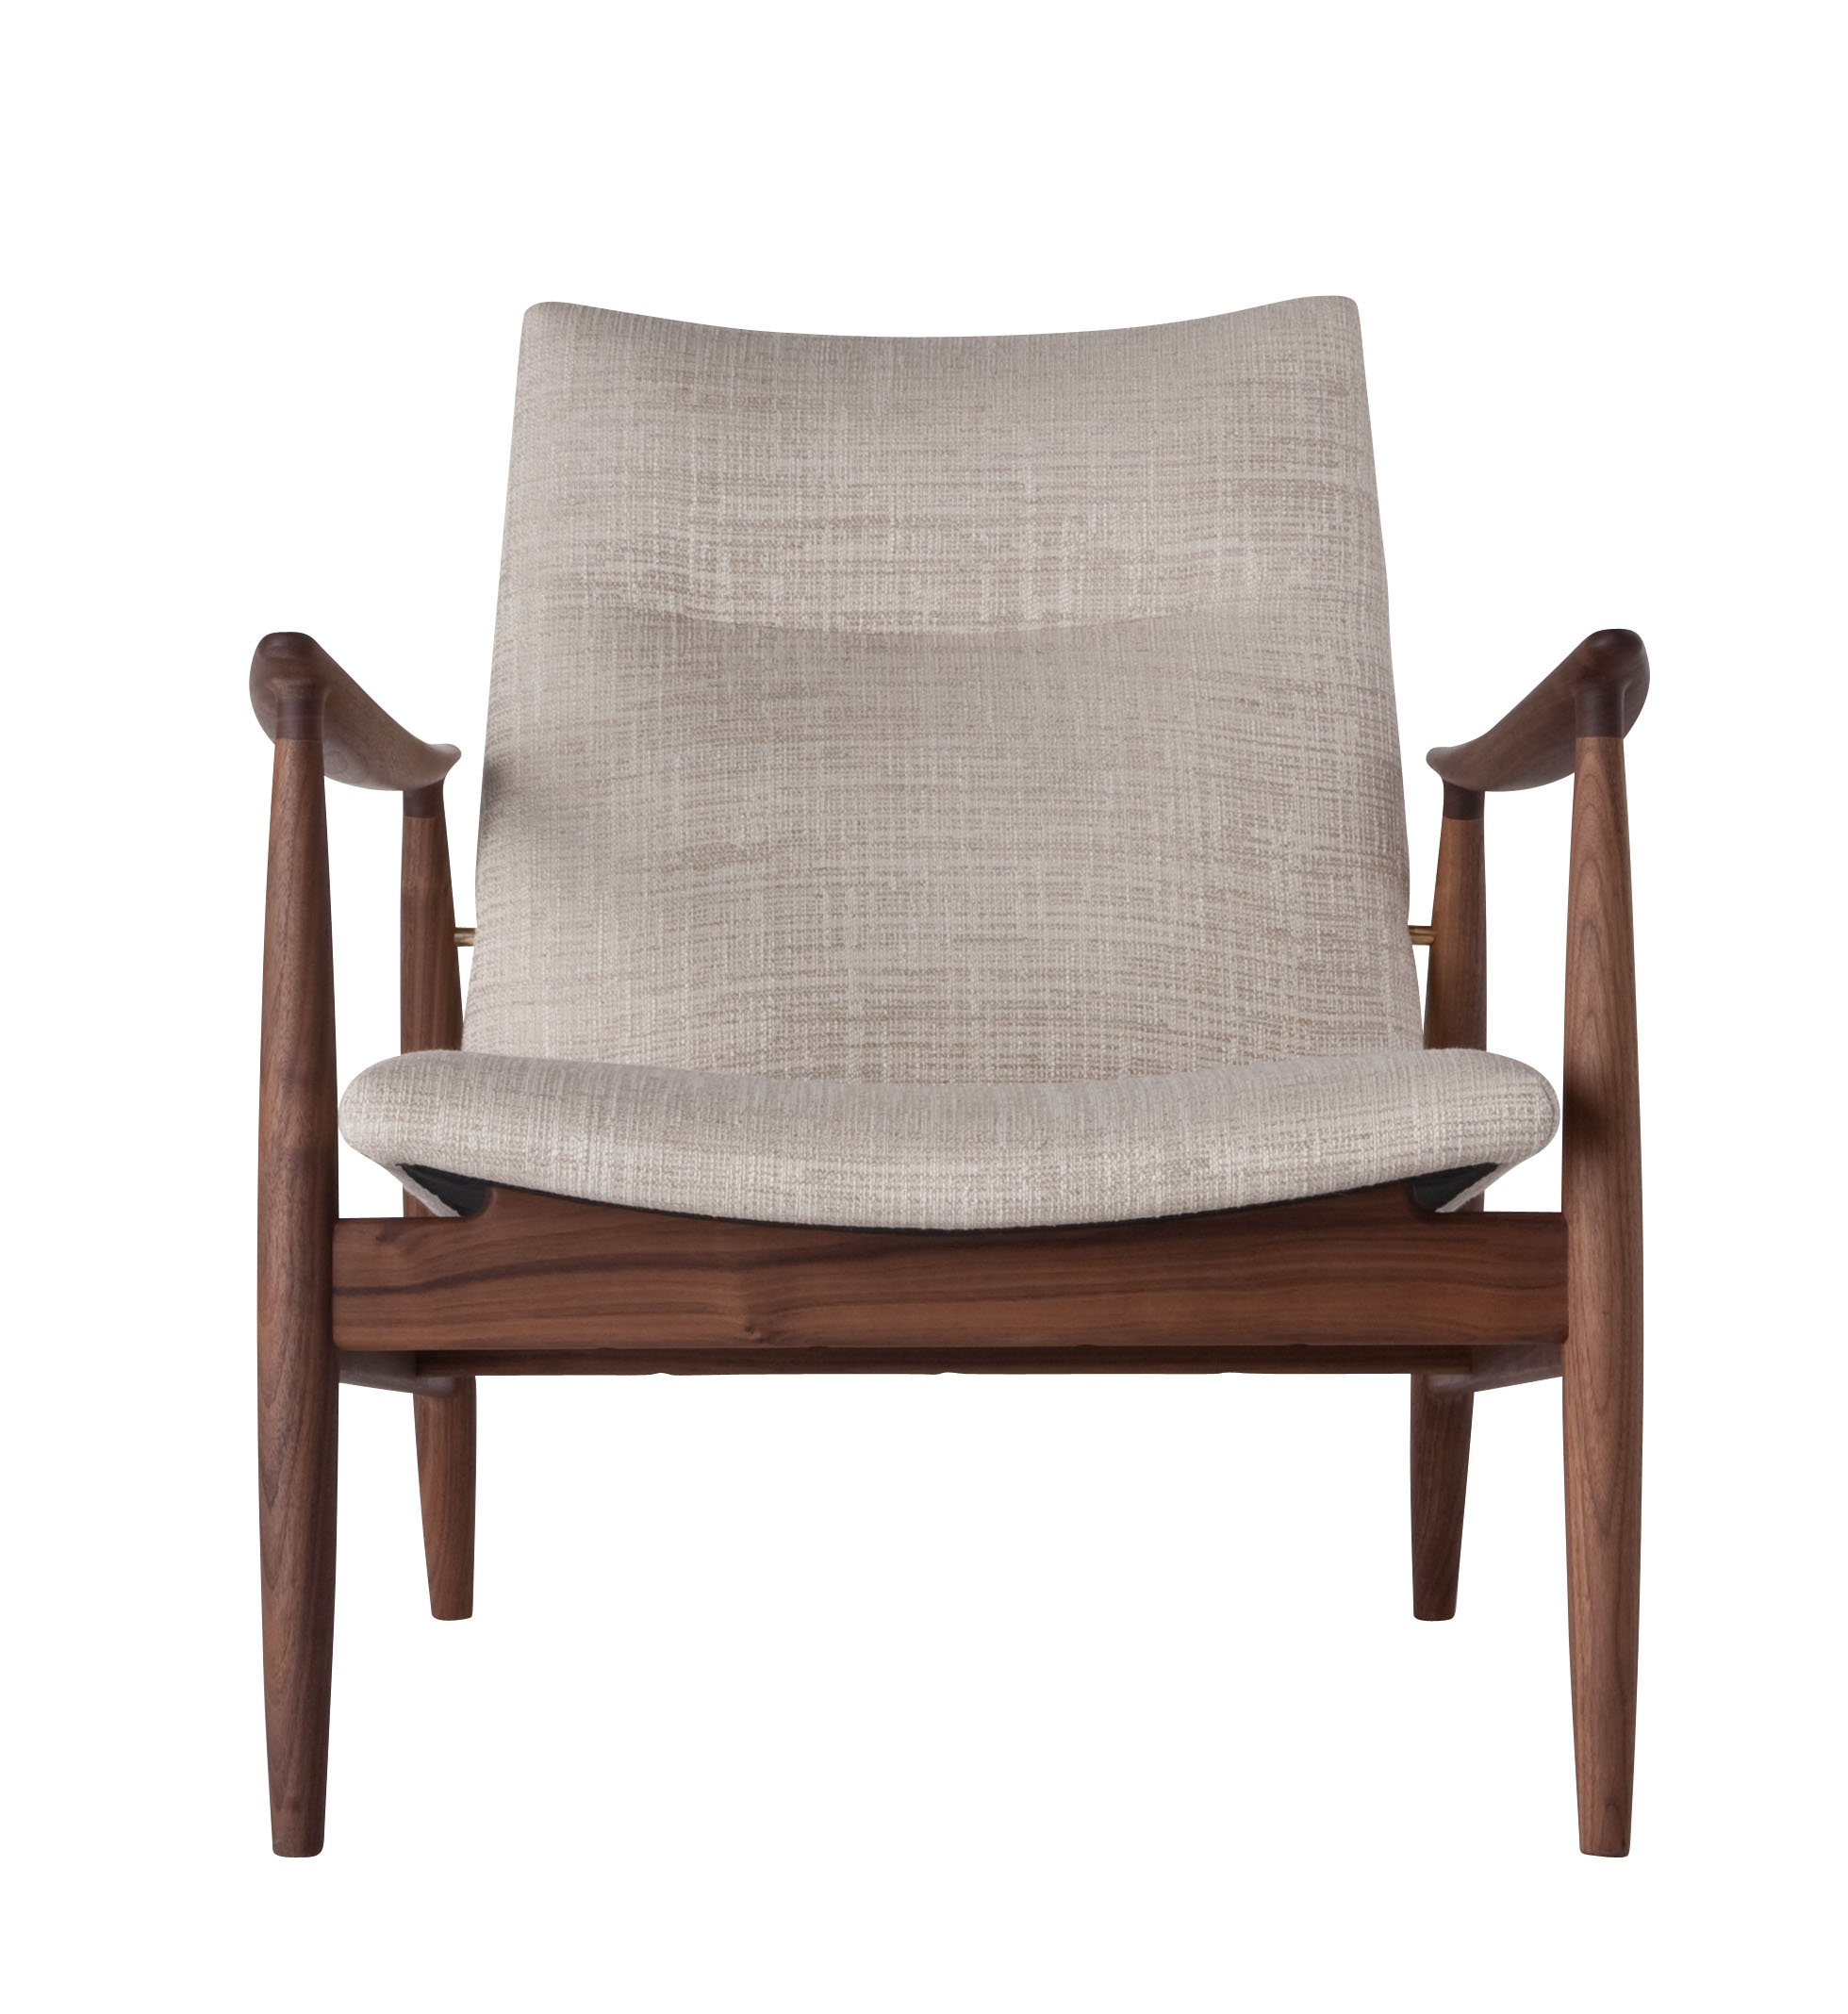 RIVAGE CHAIR Kozai Modern Trade